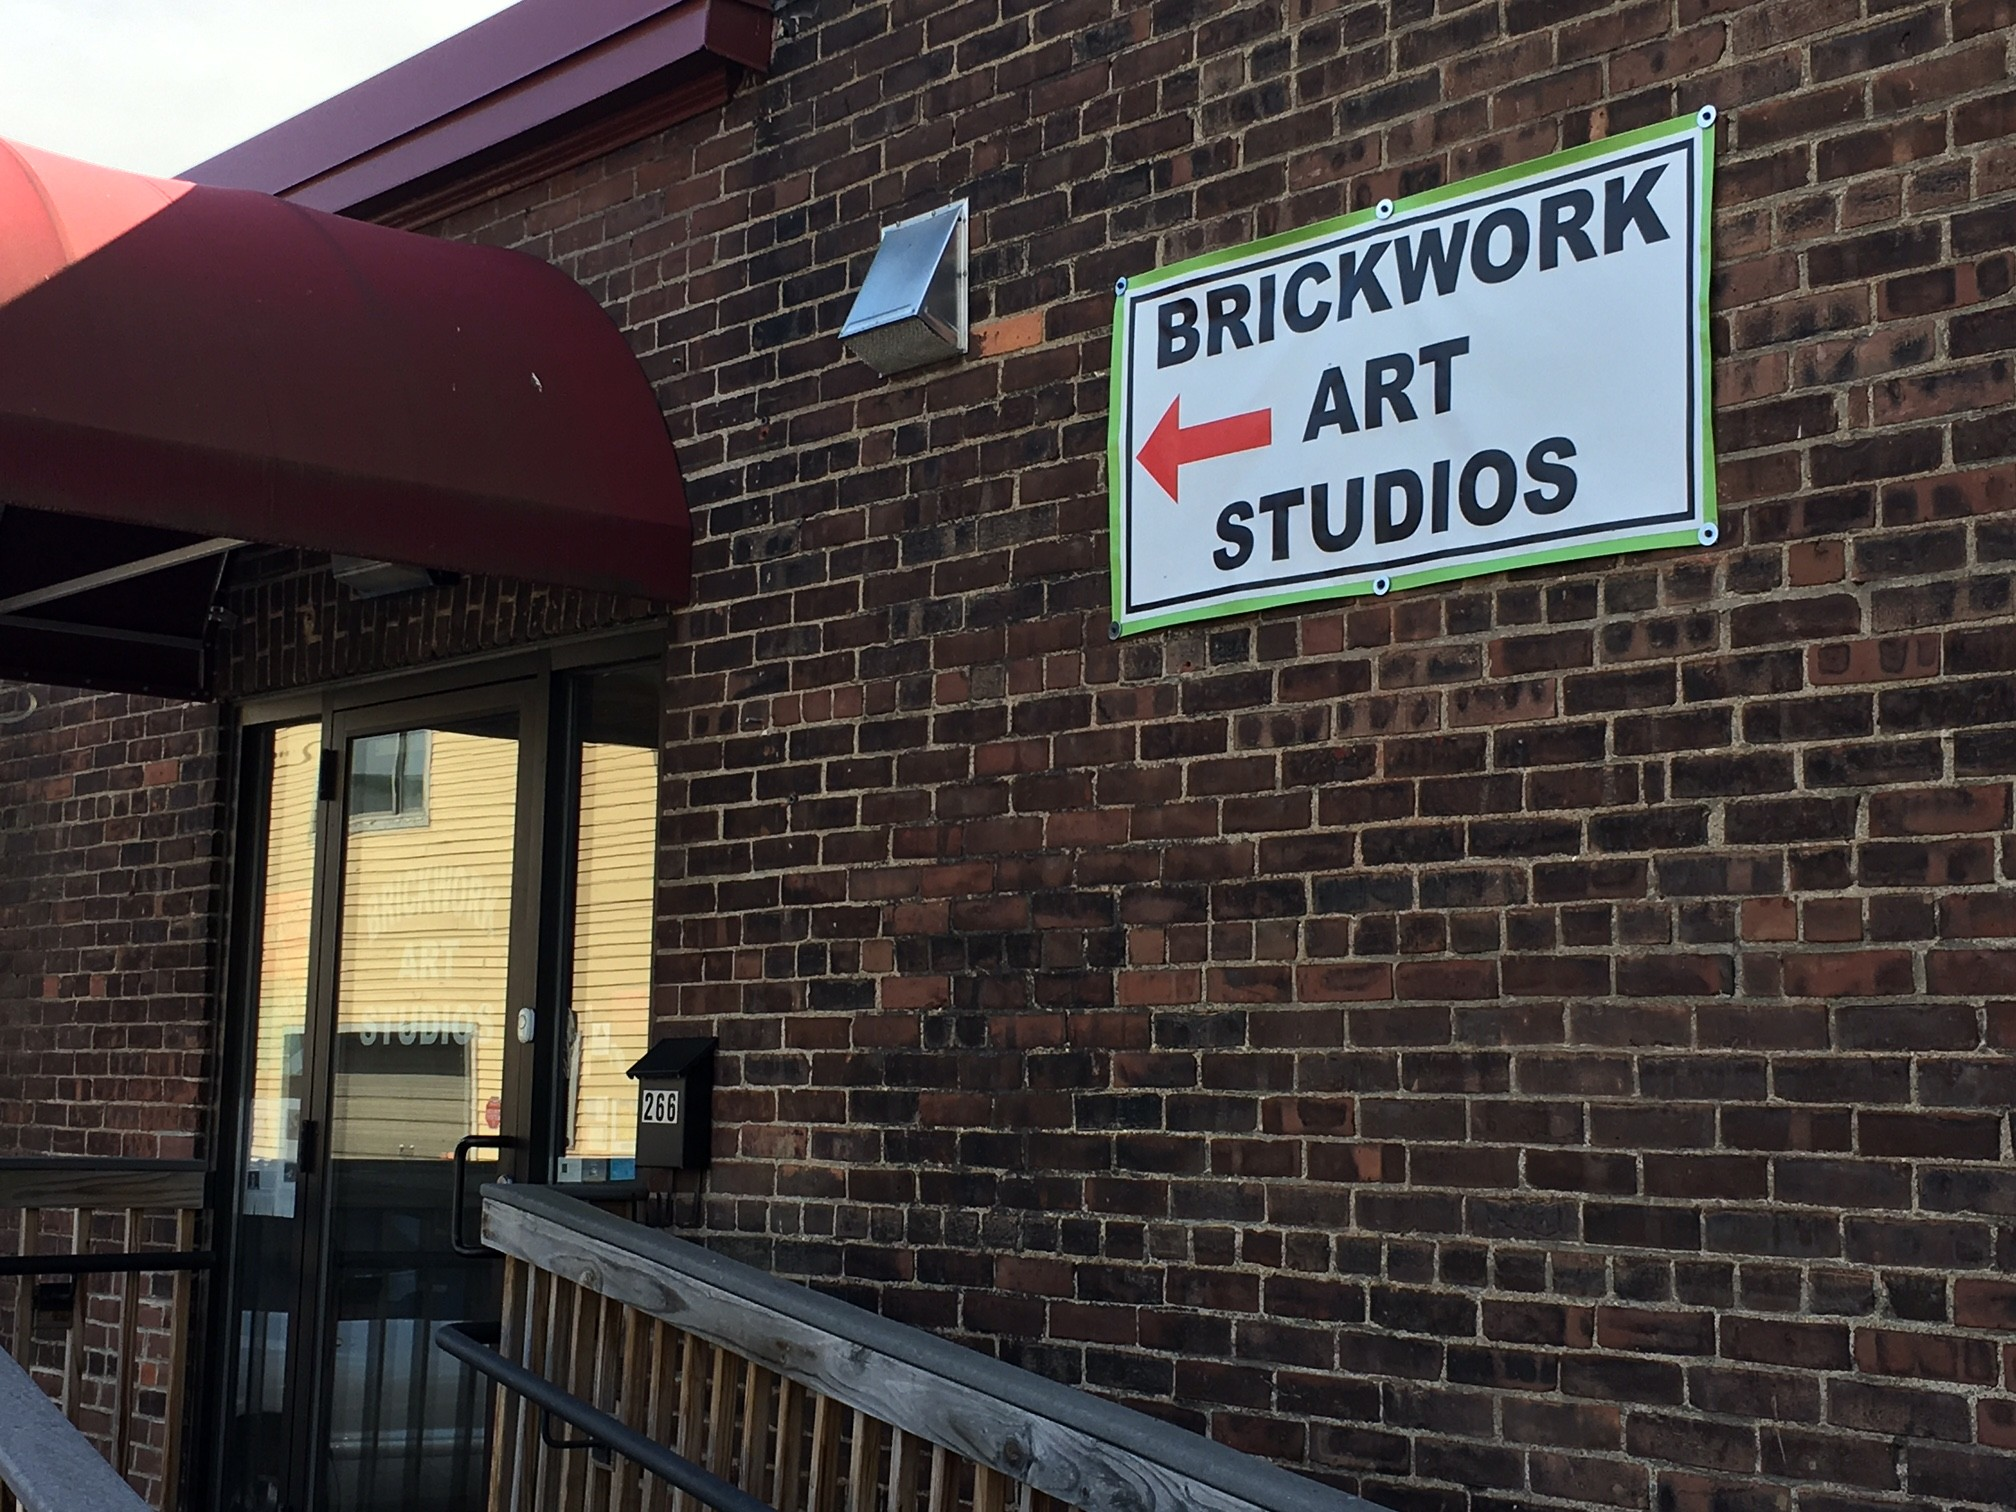 Burlington s Brickwork Art Studios to Be Closed